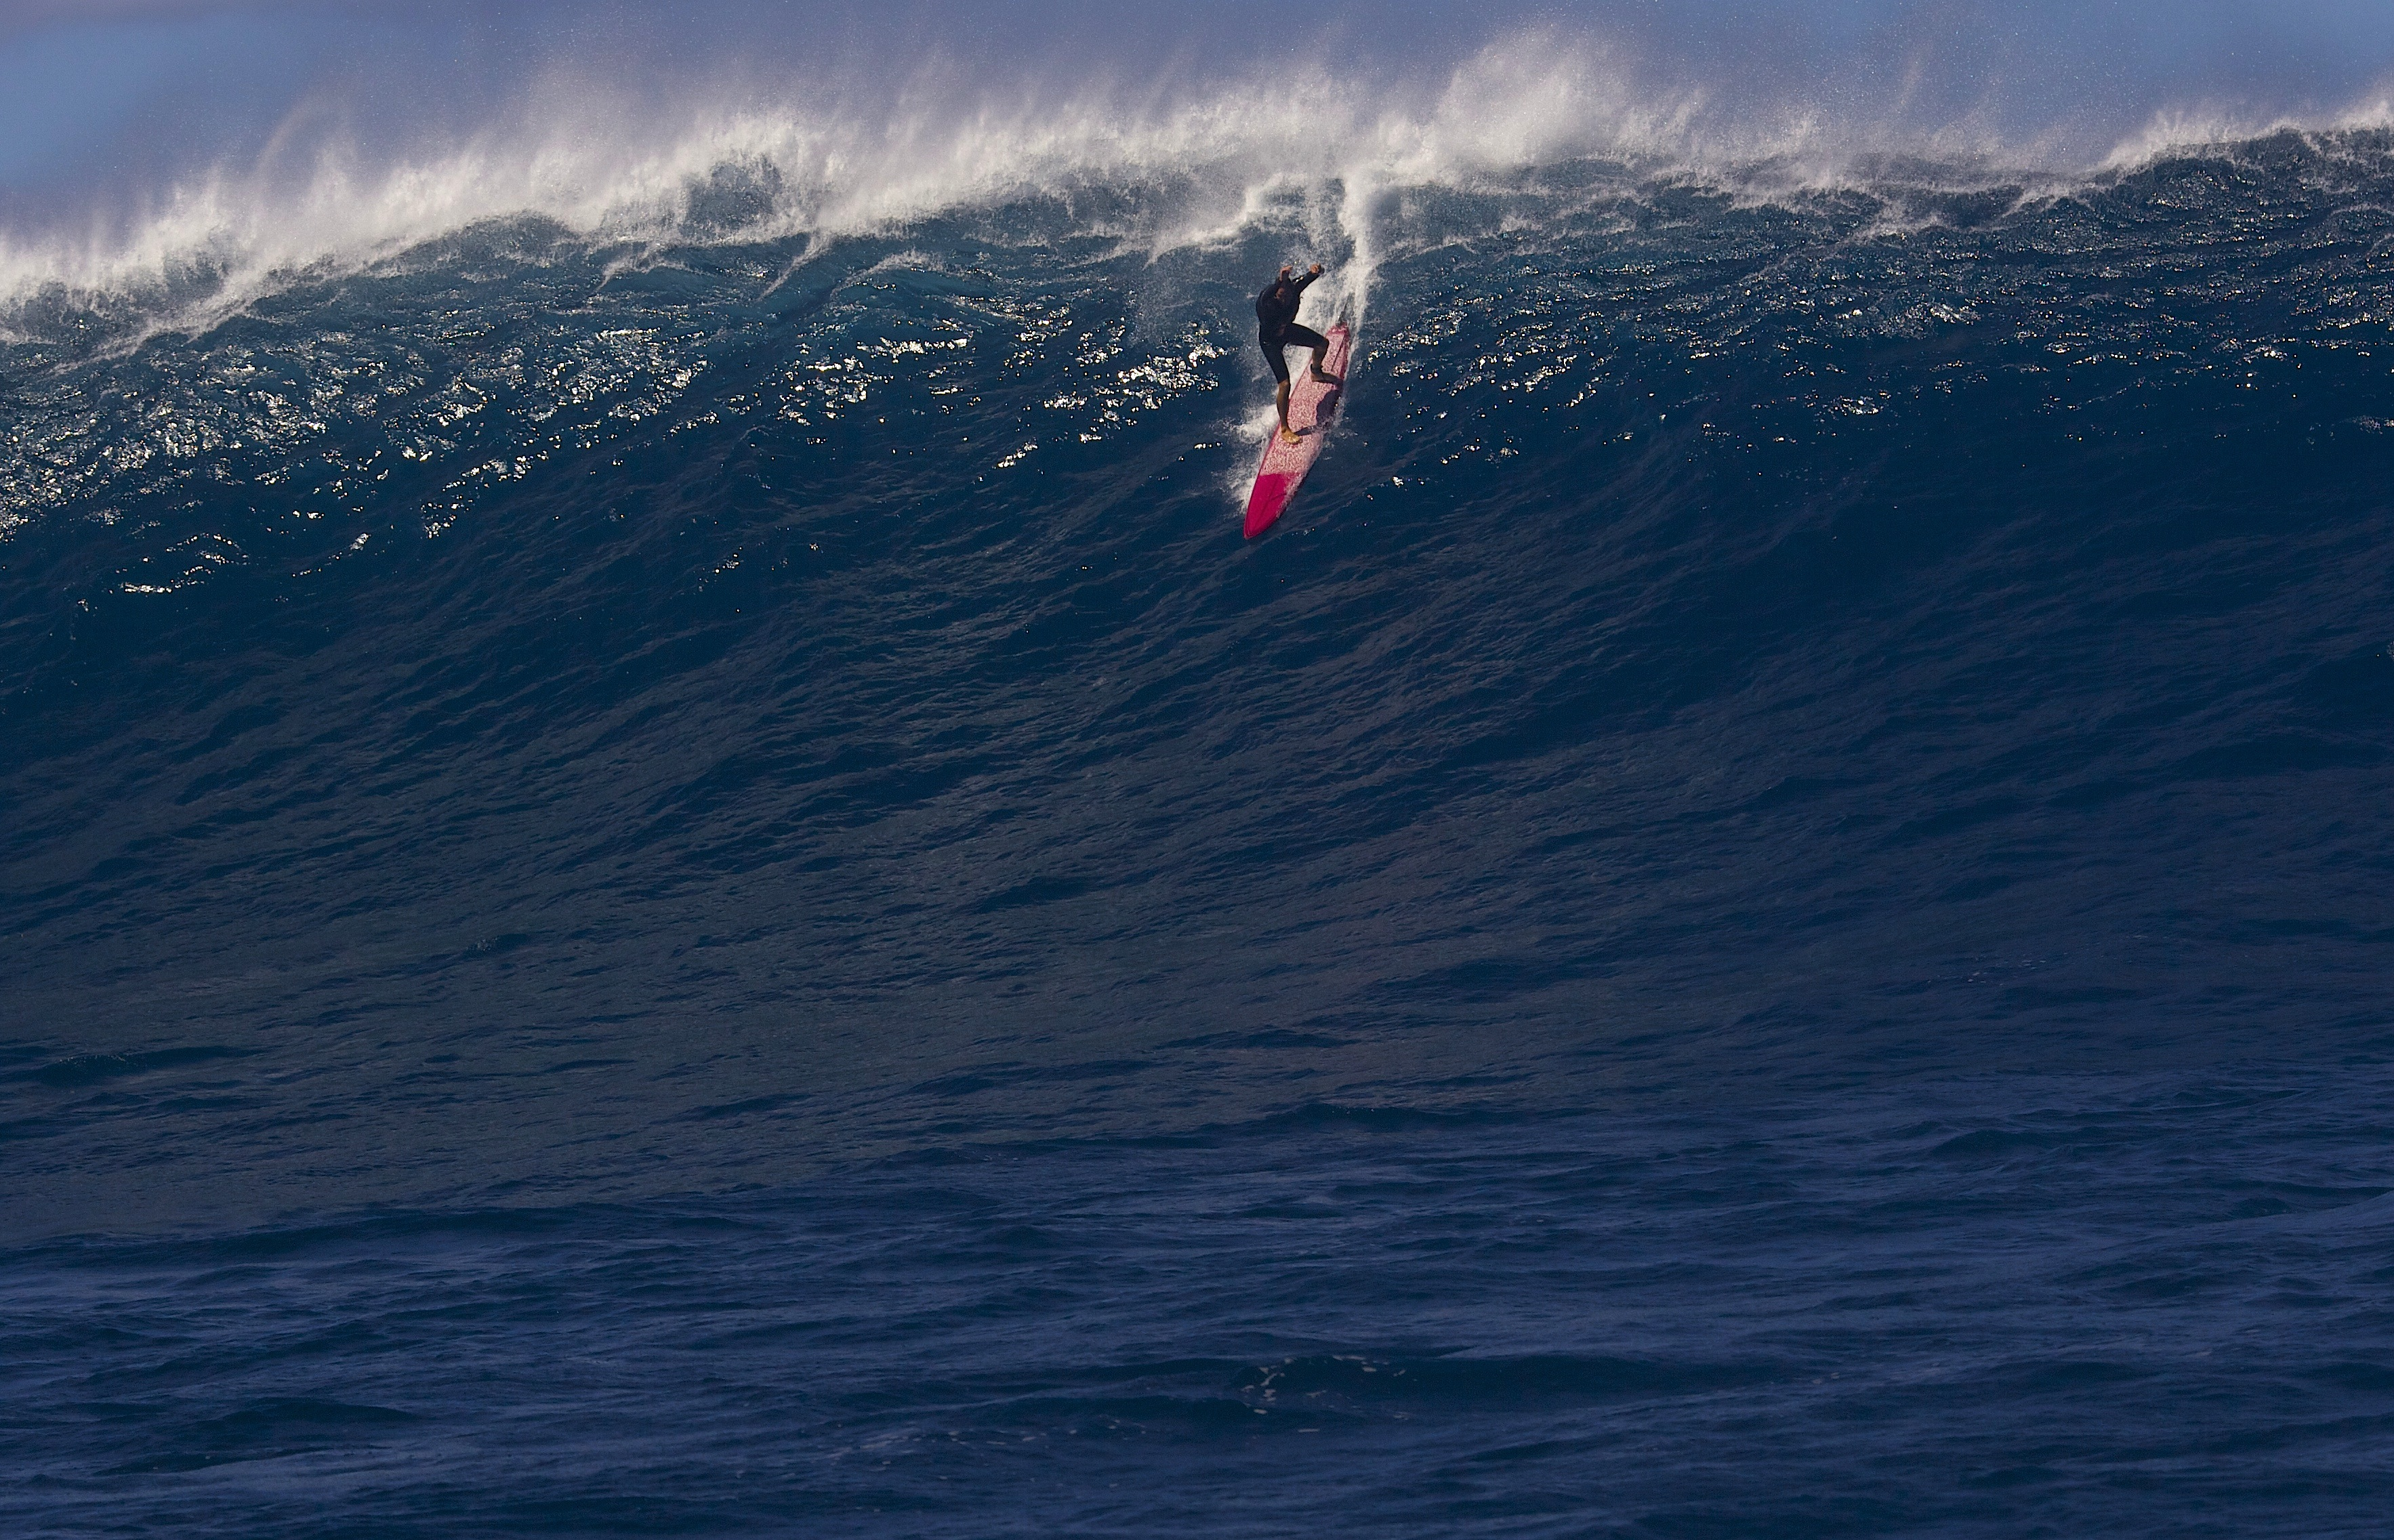 surf big waves with Apnea training and surf survival course in Oahu